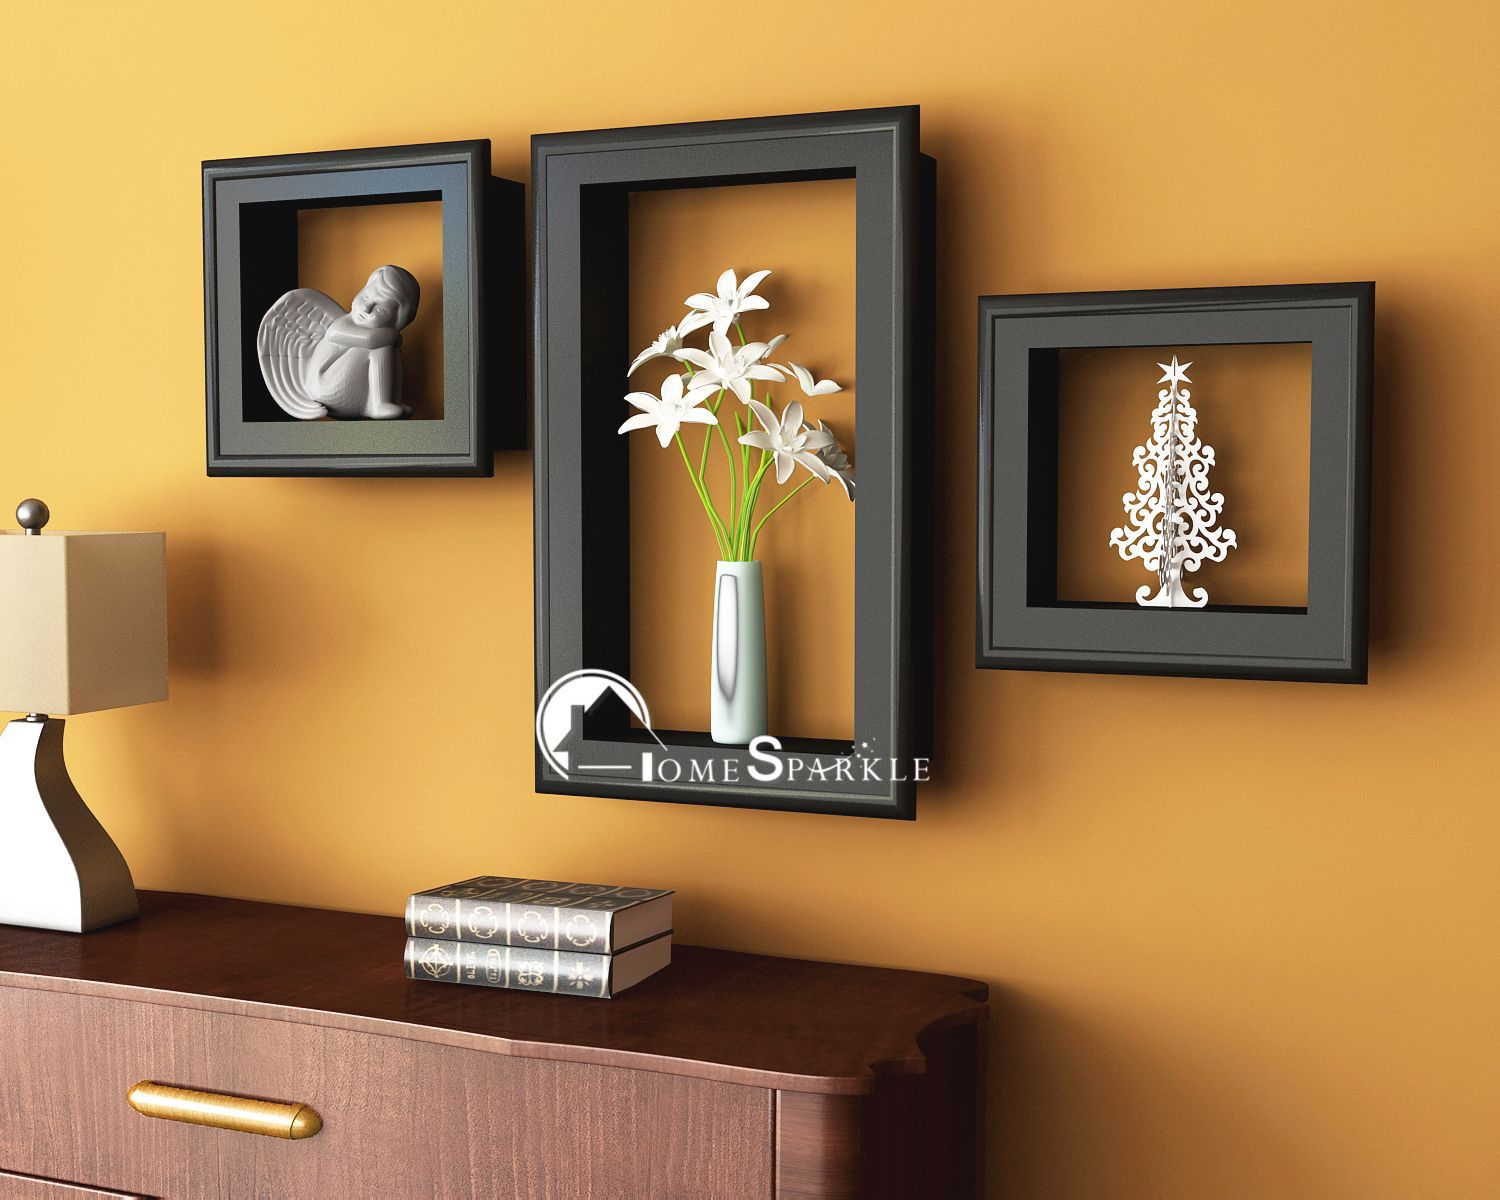 Home Sparkle MDF Set of 3 wall shelves w/Frames For Wall Décor -Suitable For Living Room/Bed Room (Designed By Craftsman)